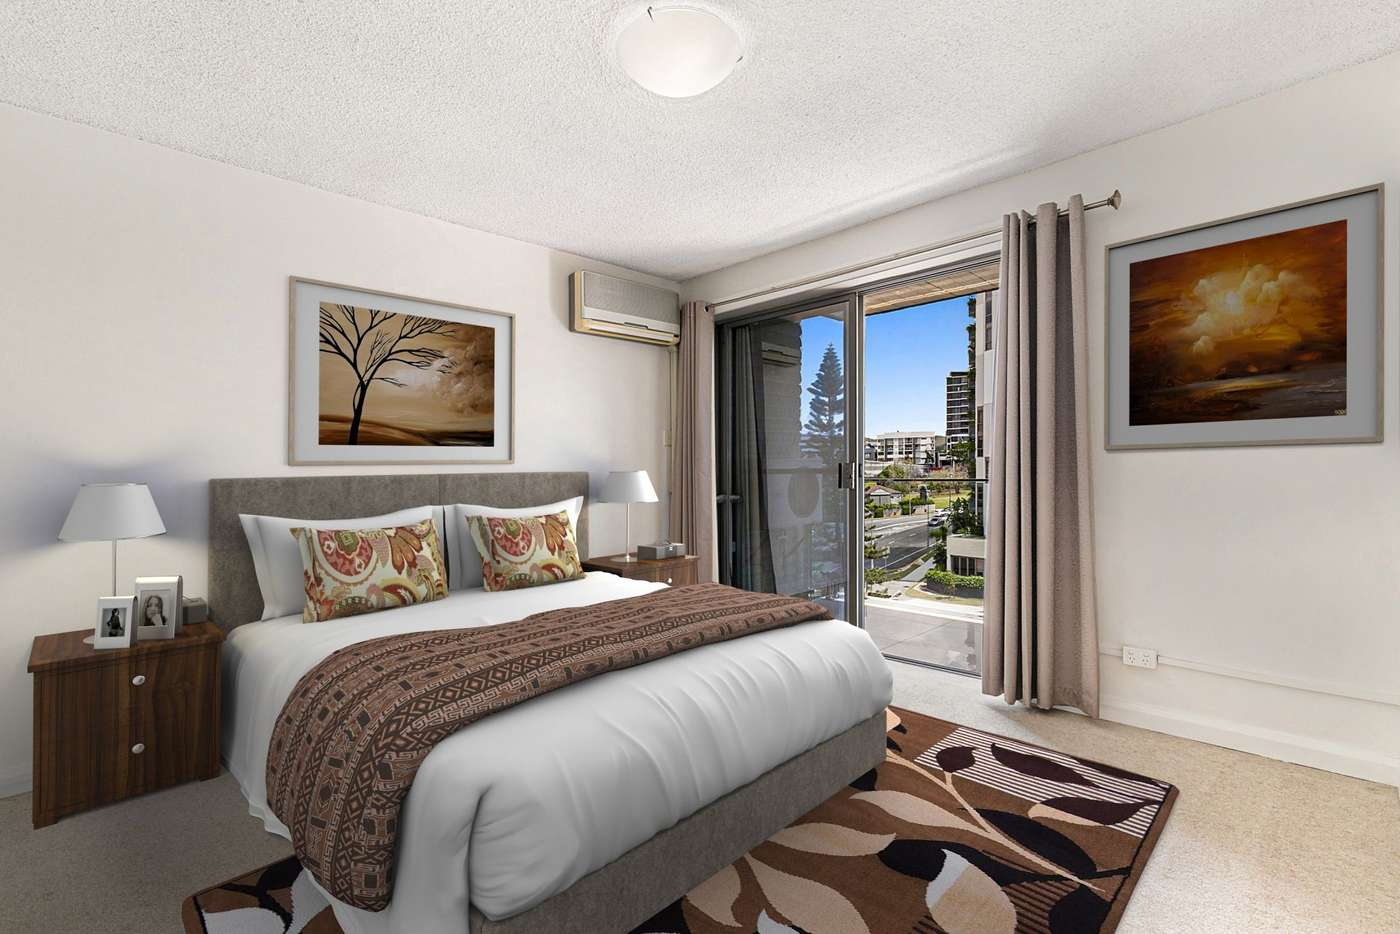 Fifth view of Homely apartment listing, 17/26 Brisbane Street, Toowong QLD 4066